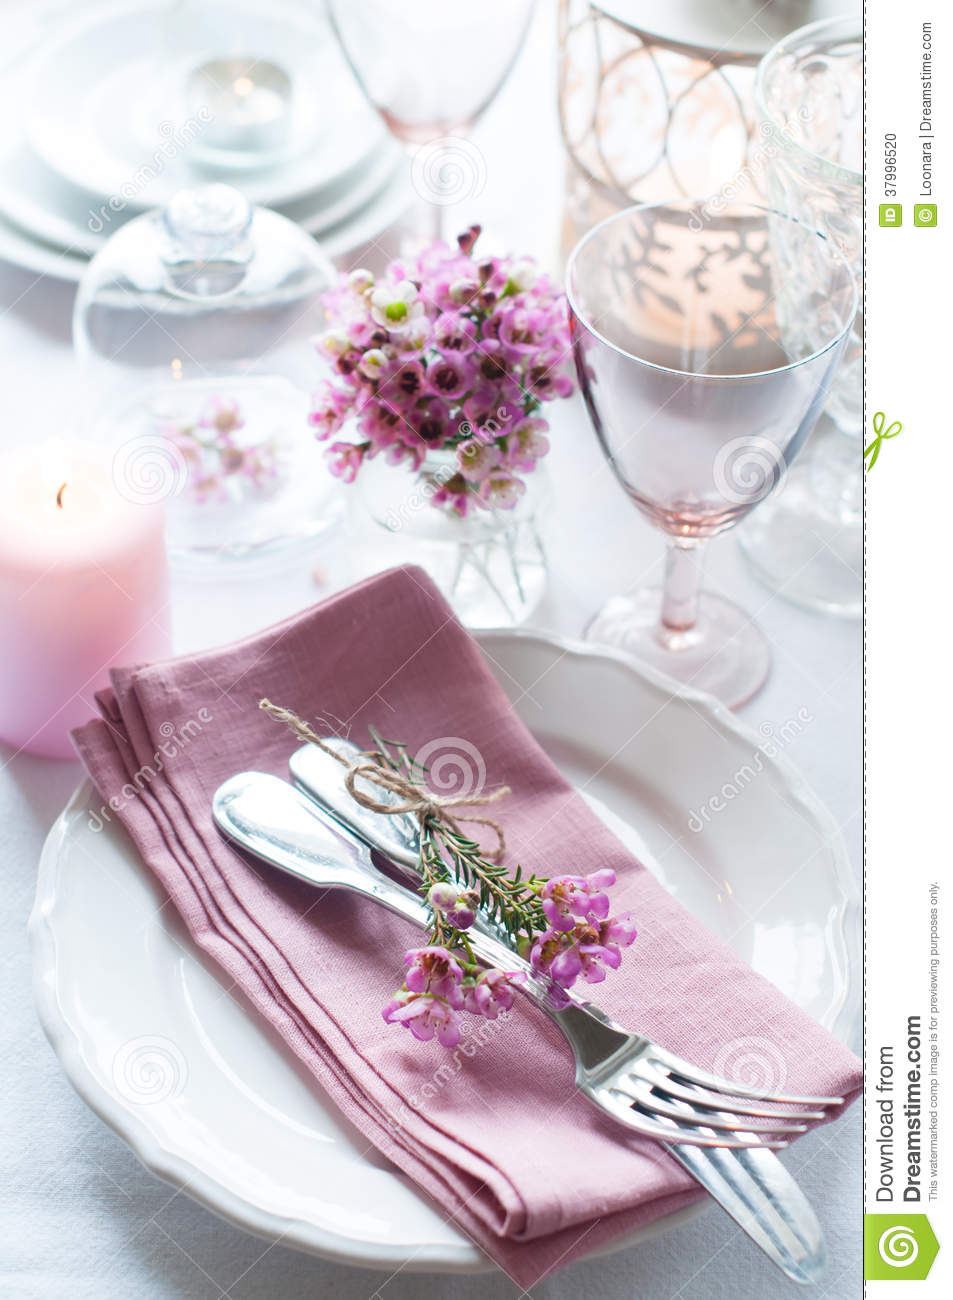 Festive Wedding Table Setting Stock Photo Image 37996520 : festive wedding table setting pink flowers napkins vintage cutlery glasses candles bright summer decor 37996520 from www.dreamstime.com size 953 x 1300 jpeg 135kB